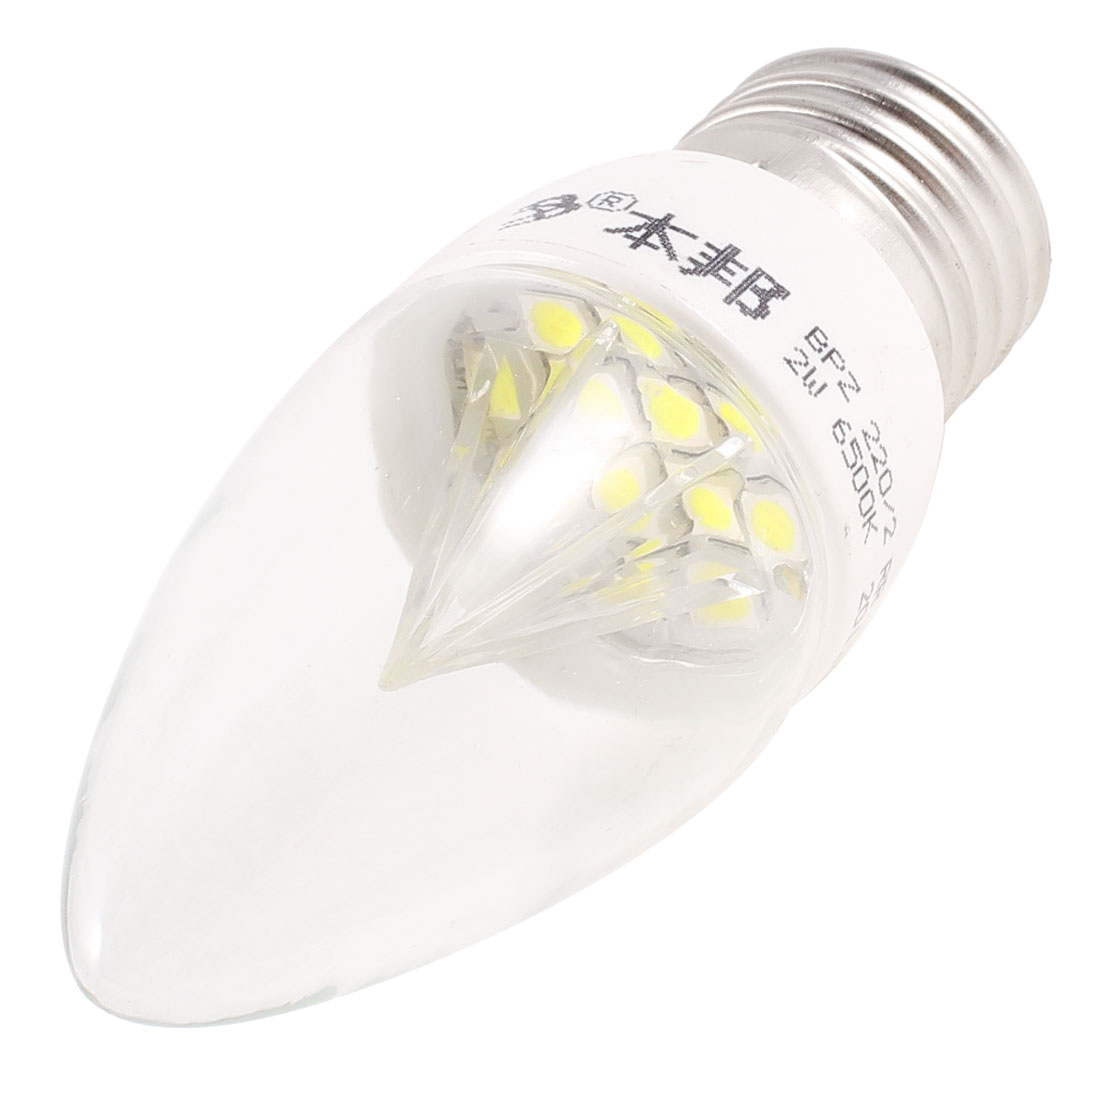 Decorative 6500K 2W 220V E27 Screw Base White 12 LEDs Candle Bulb